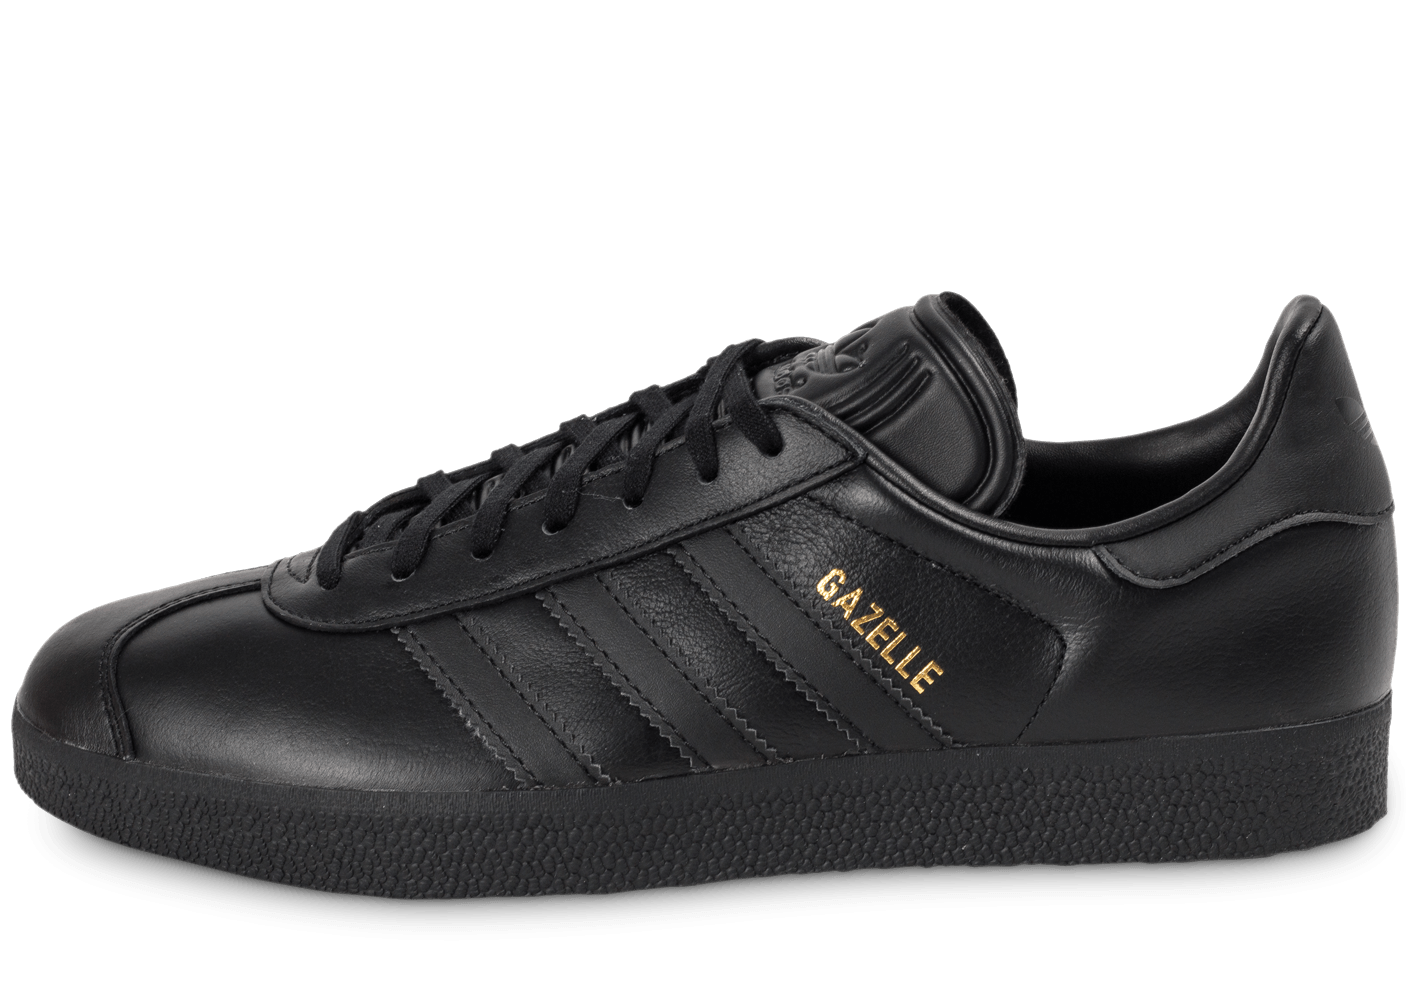 chaussures cuir homme adidas